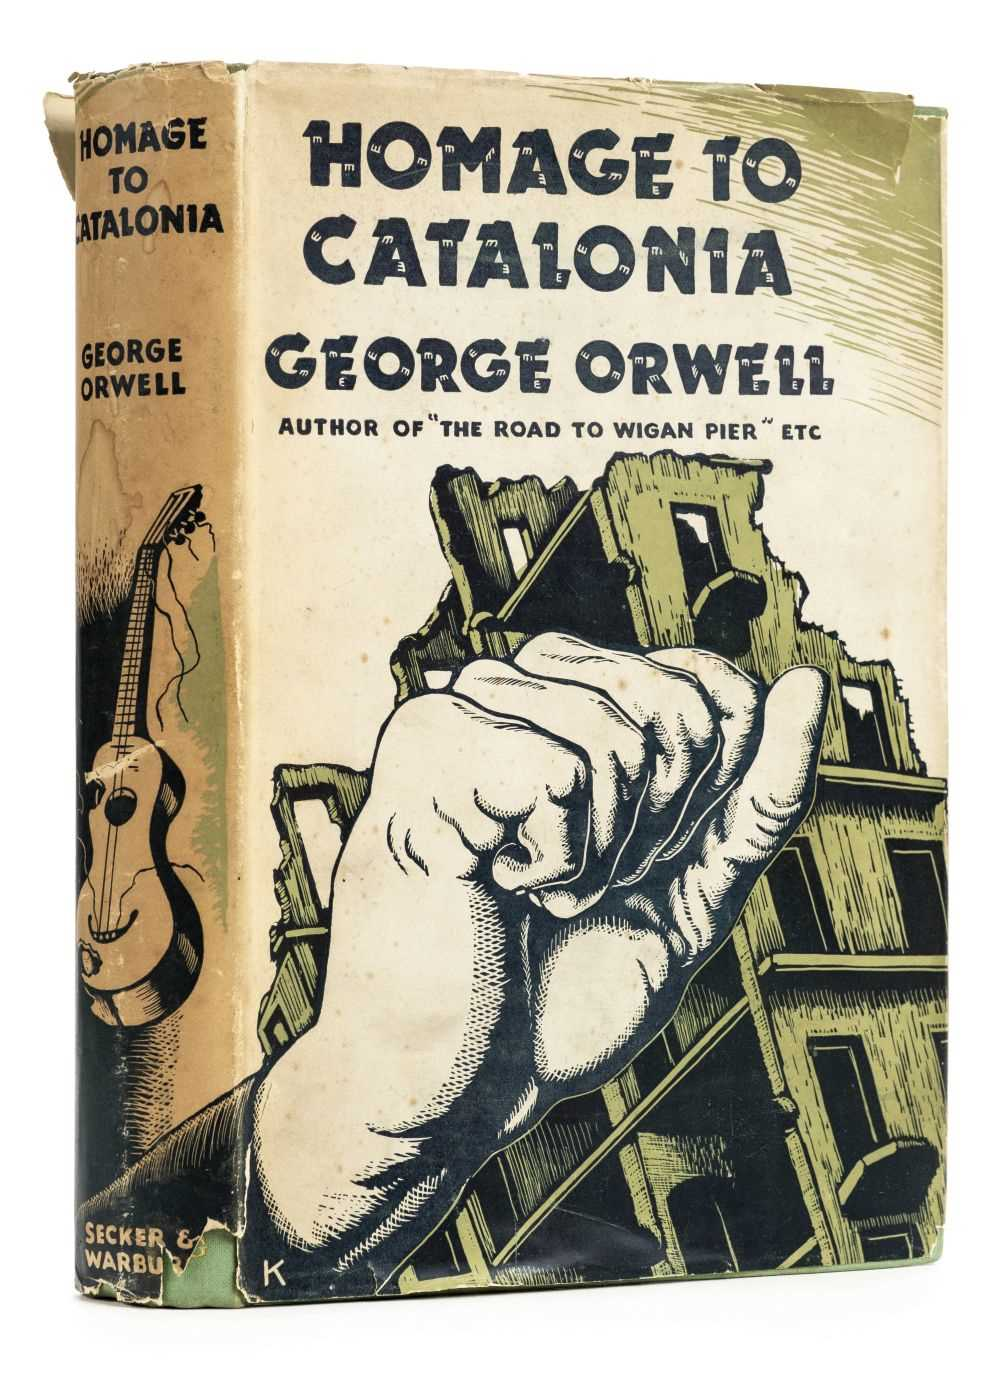 Lot 853-Orwell (George). Homage to Catalonia, 1st edition, Secker & Warburg, 1938